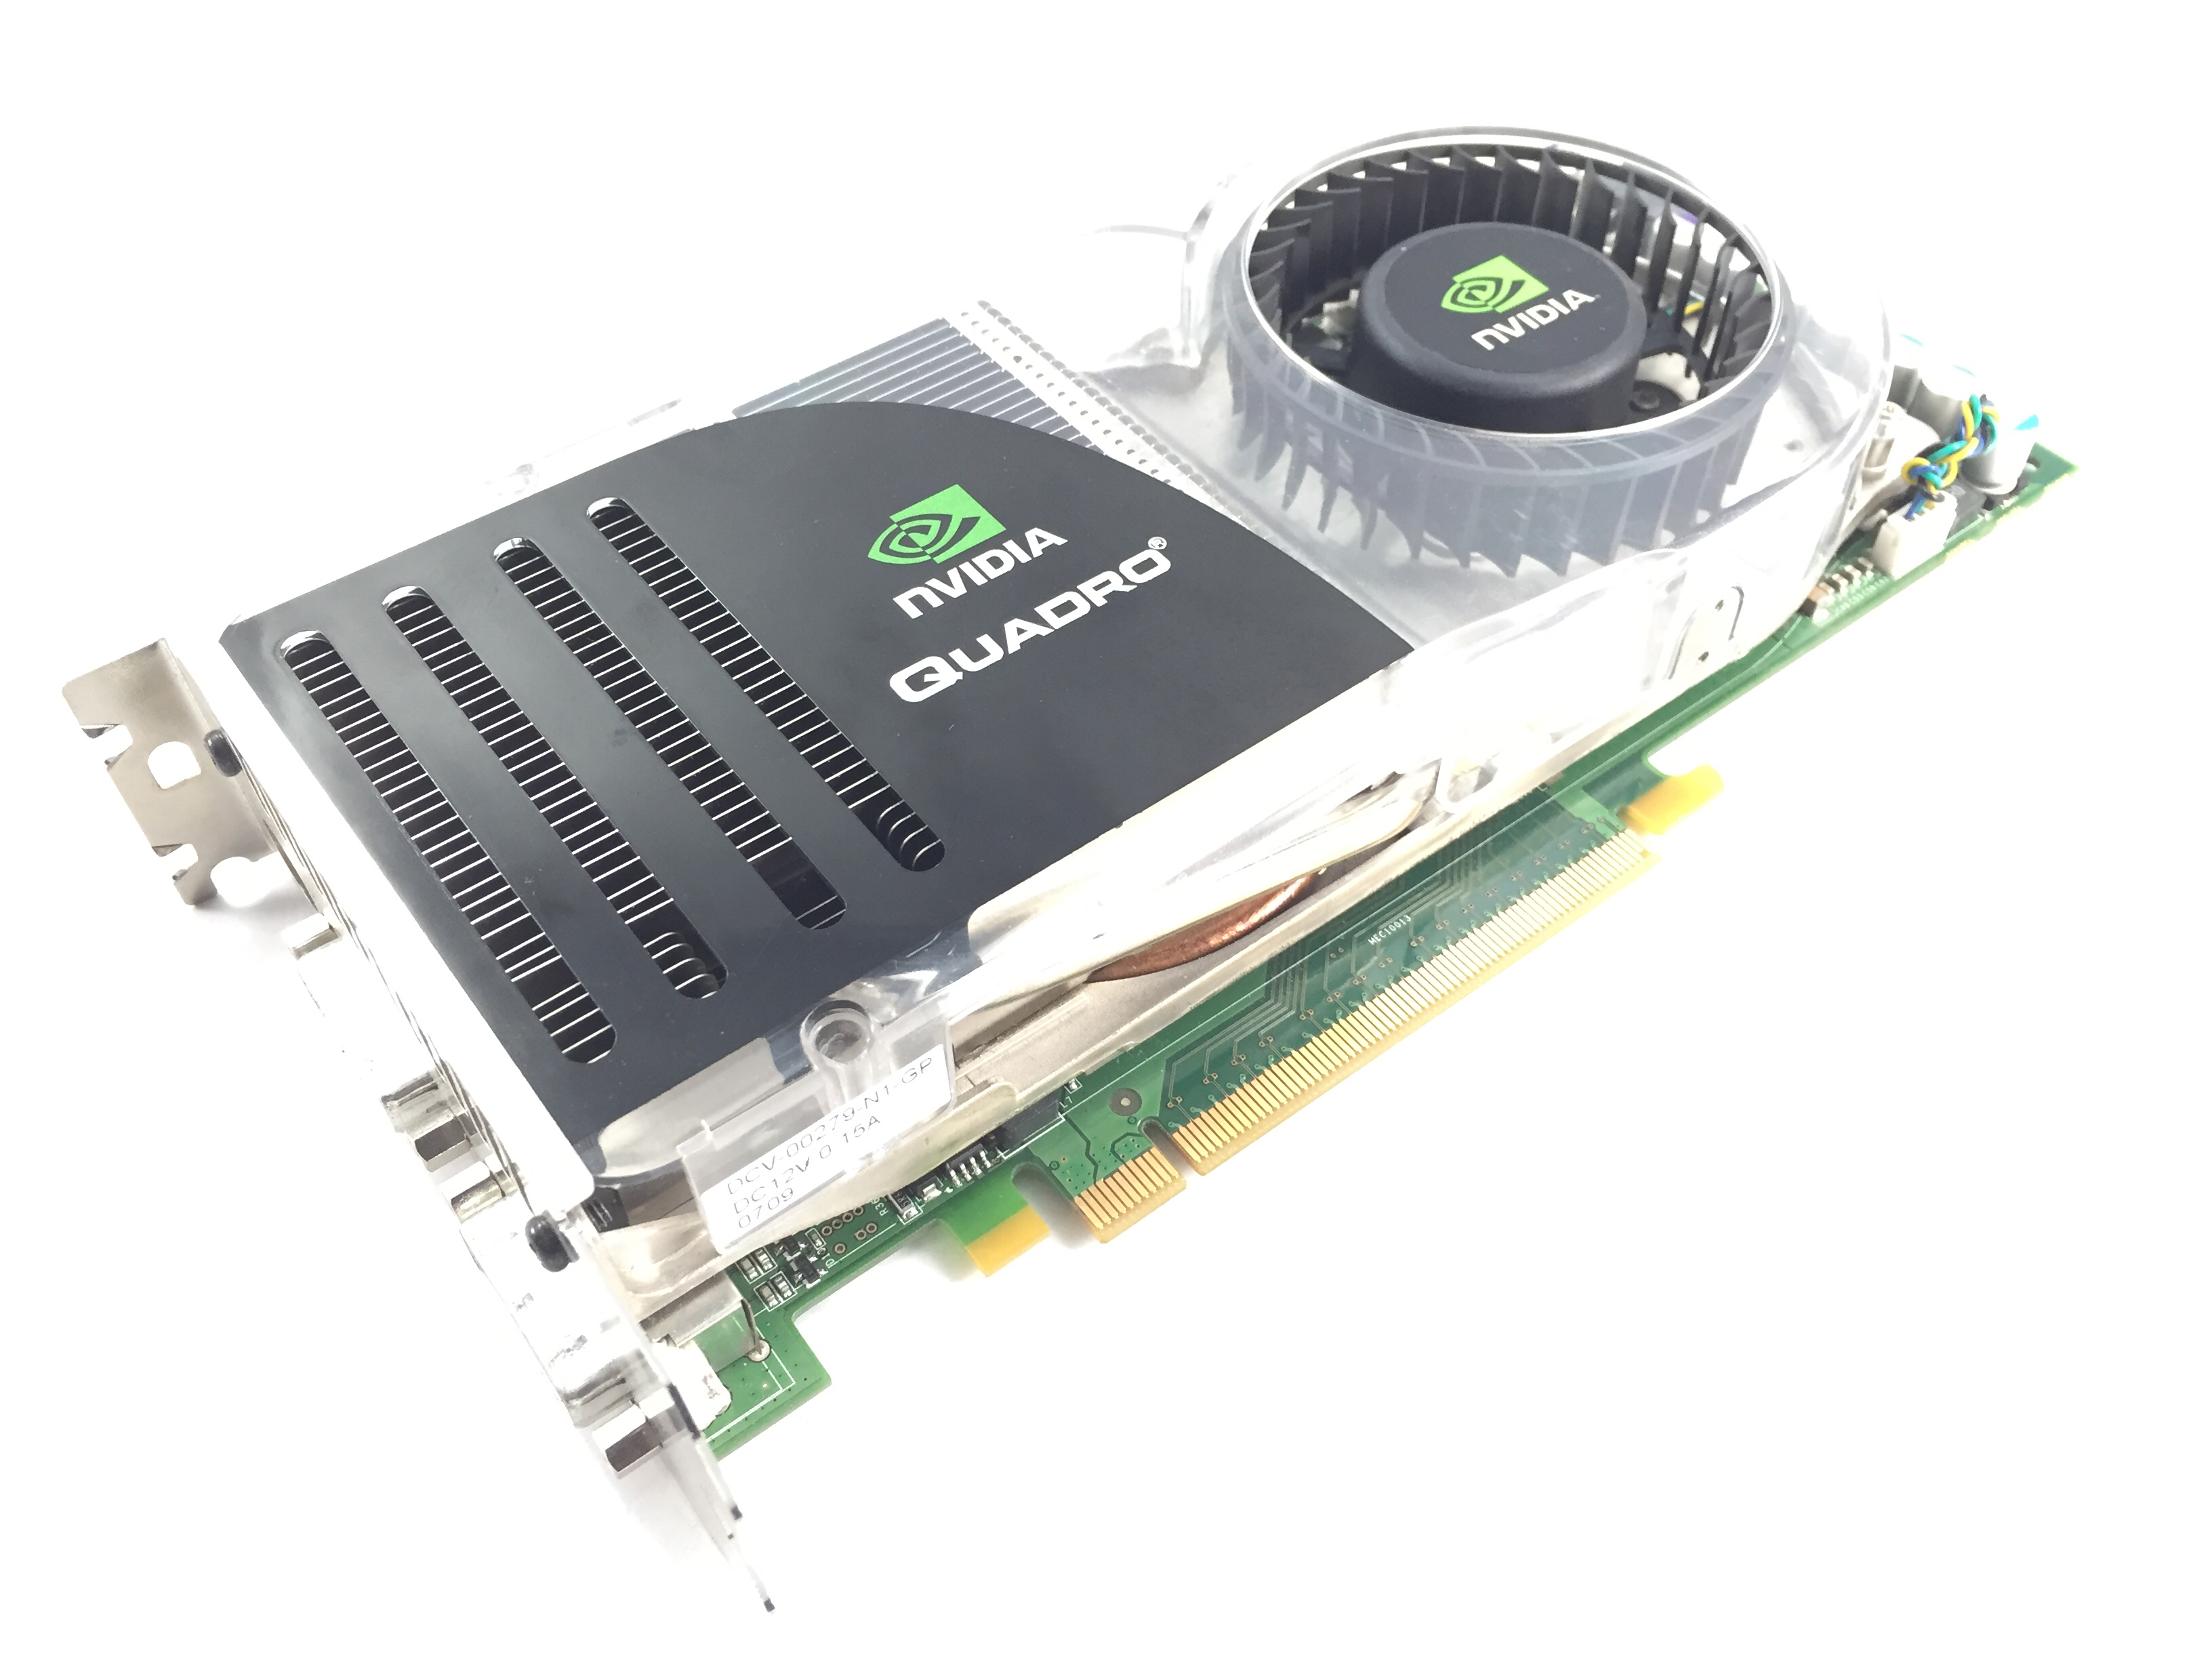 Nvidia Quadrofx 4600 768MB GDDR3 384-Bit Pci Express X16 Graphics Card (FX4600)